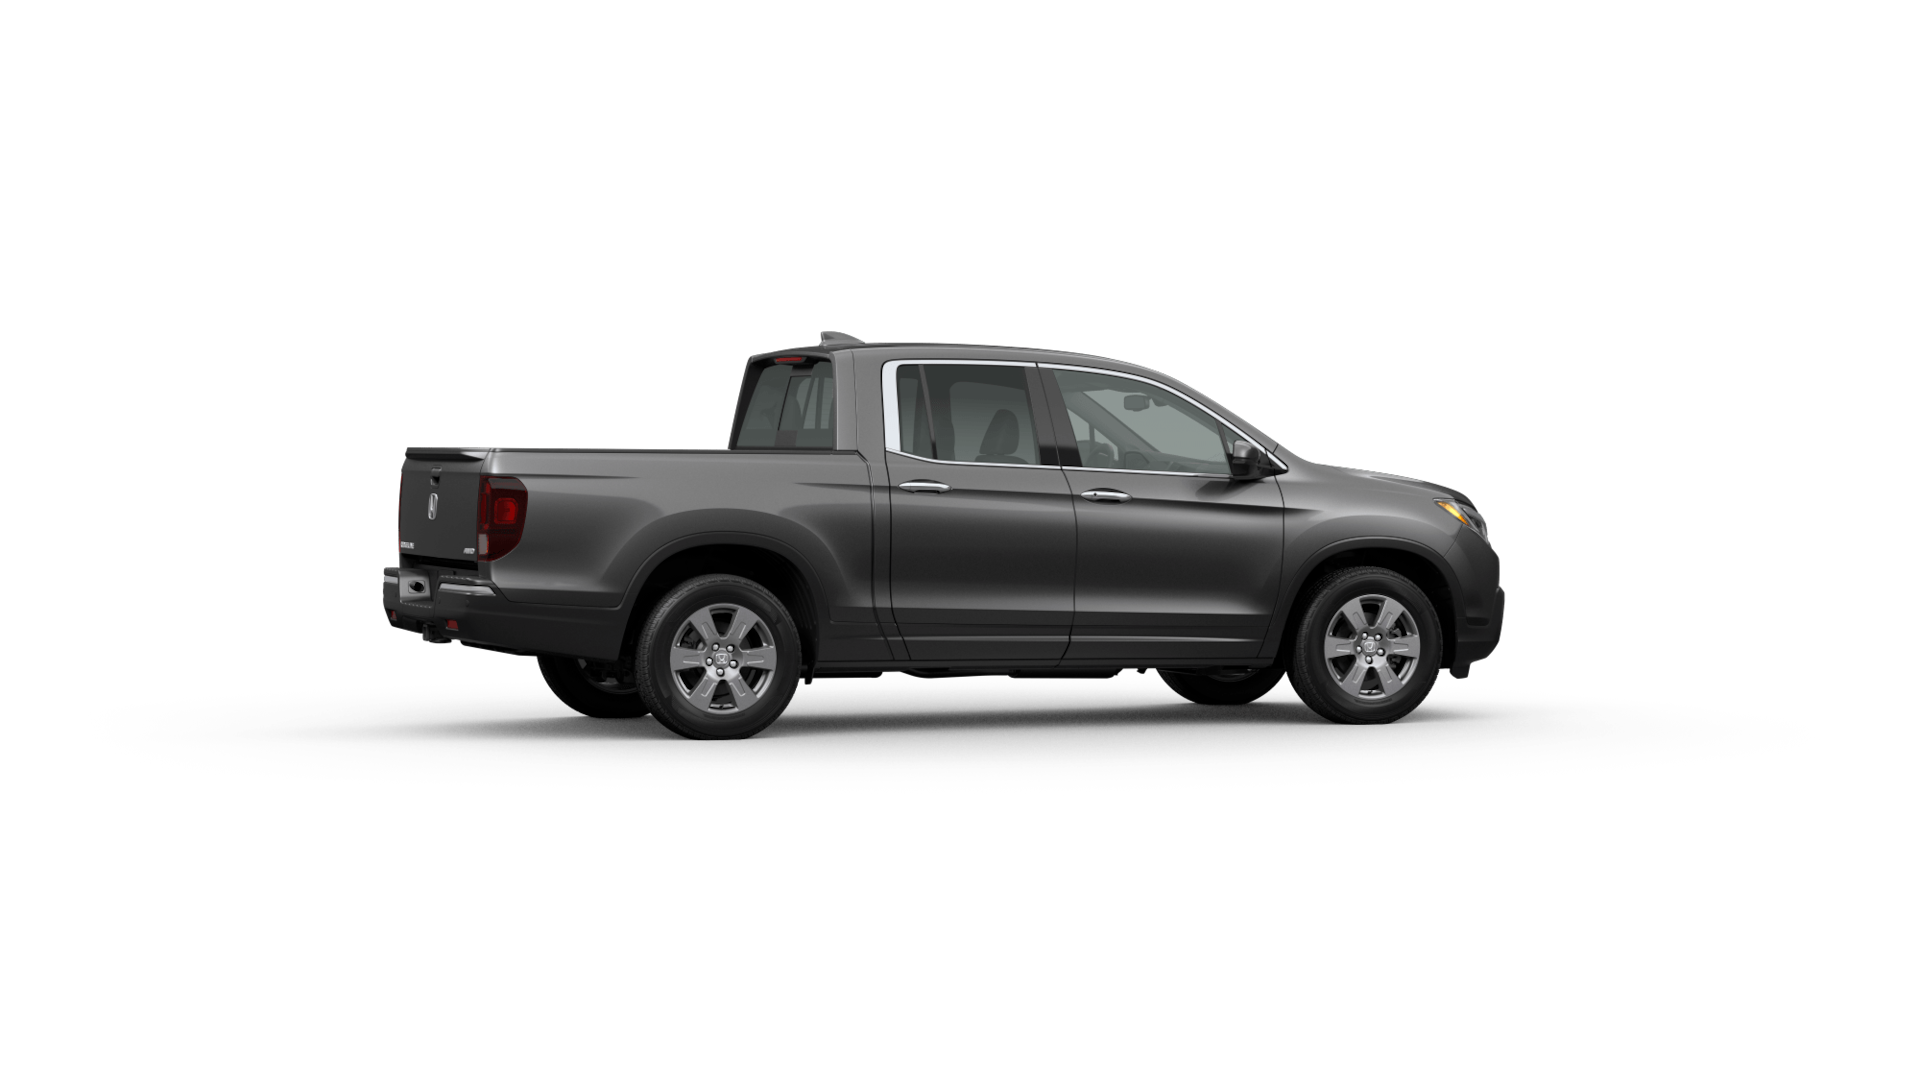 The Best 2020 Honda Ridgeline Rtl-E Colors